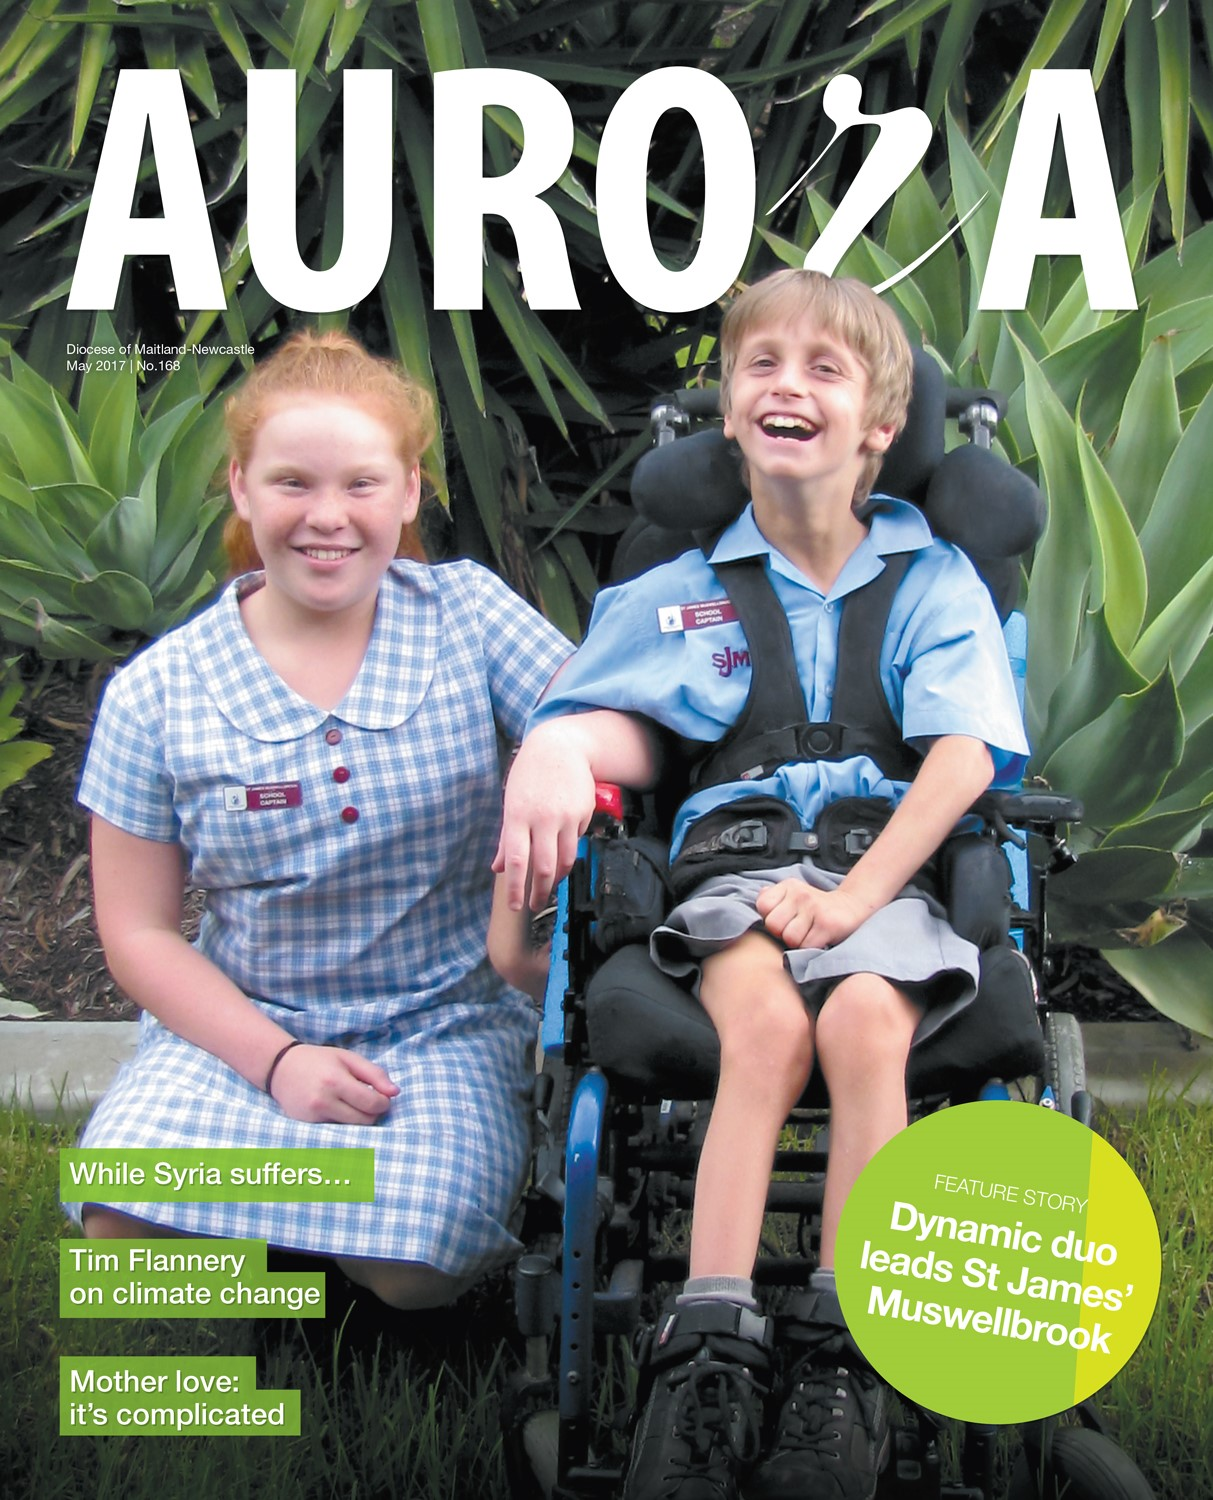 Aurora May 2017 Cover Image